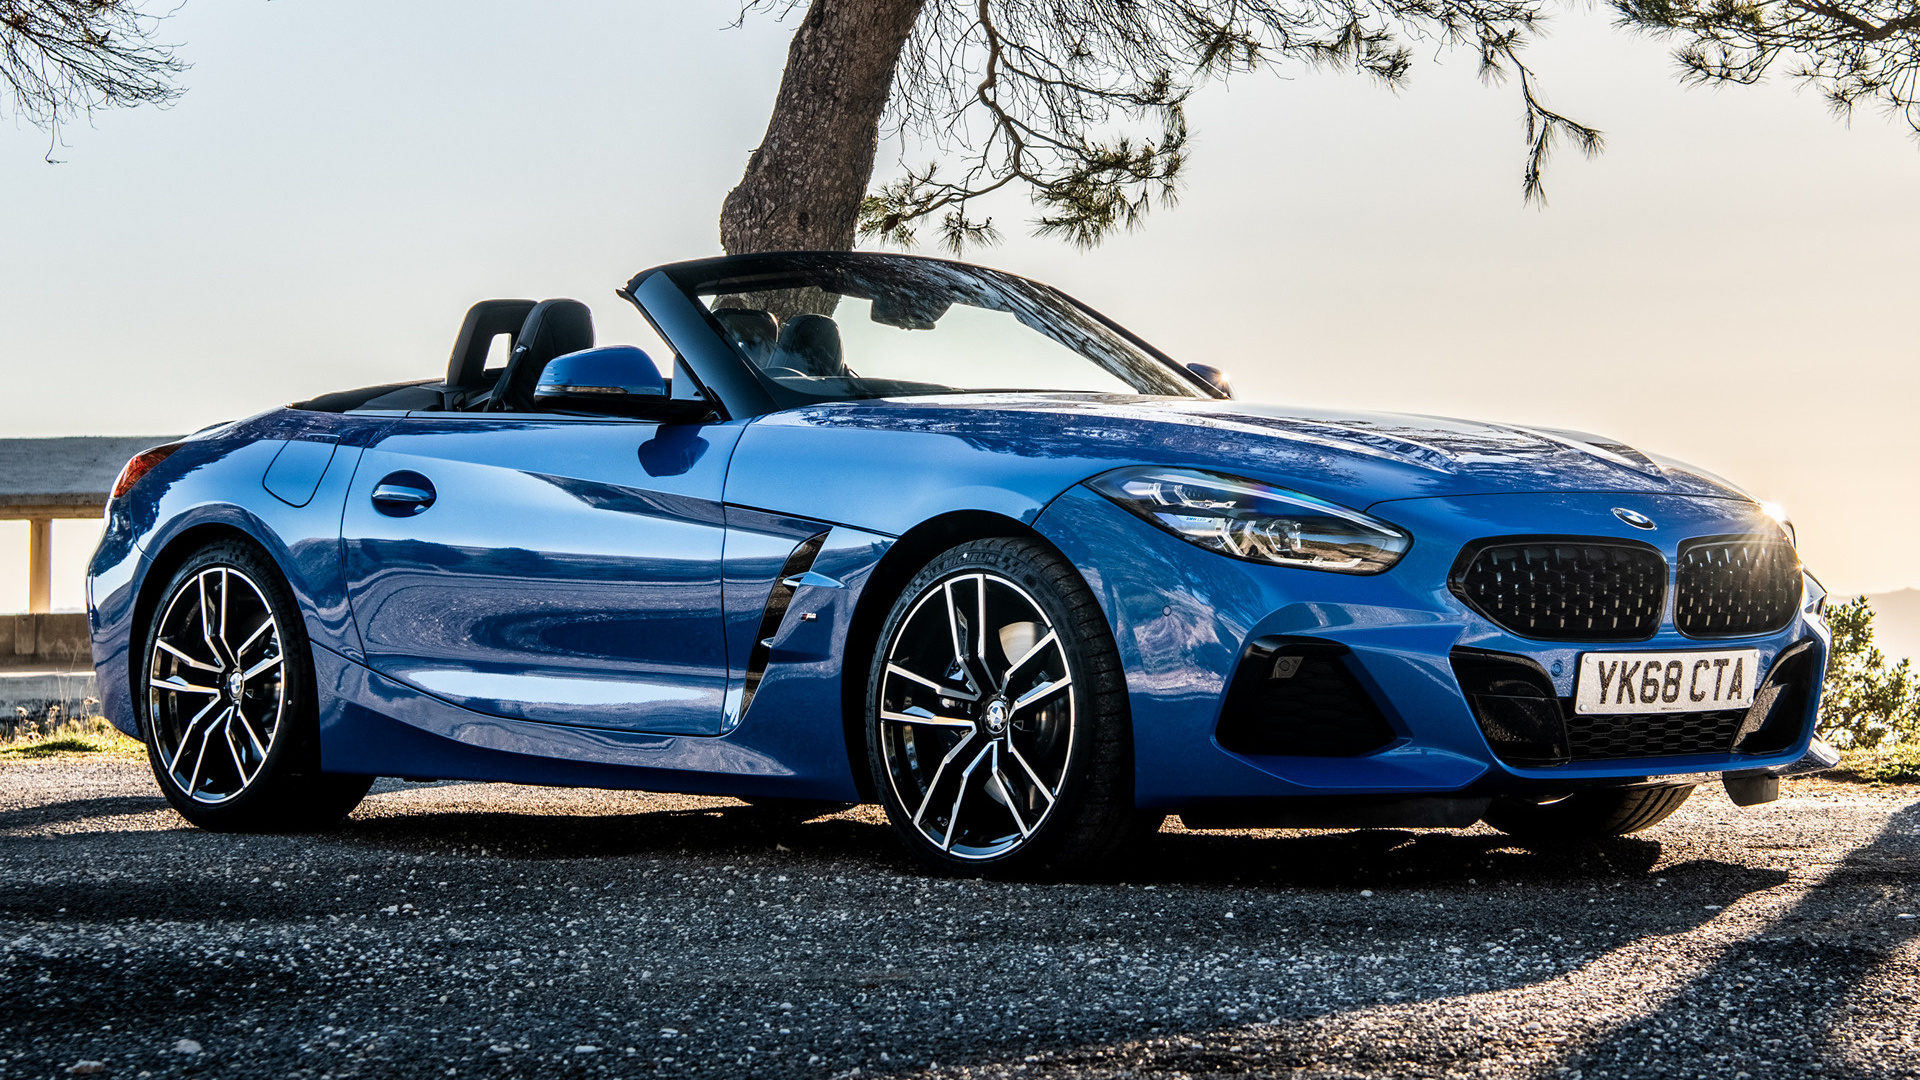 2019 Bmw Z4 M Sport Shadow Line Uk Wallpapers And Hd Images